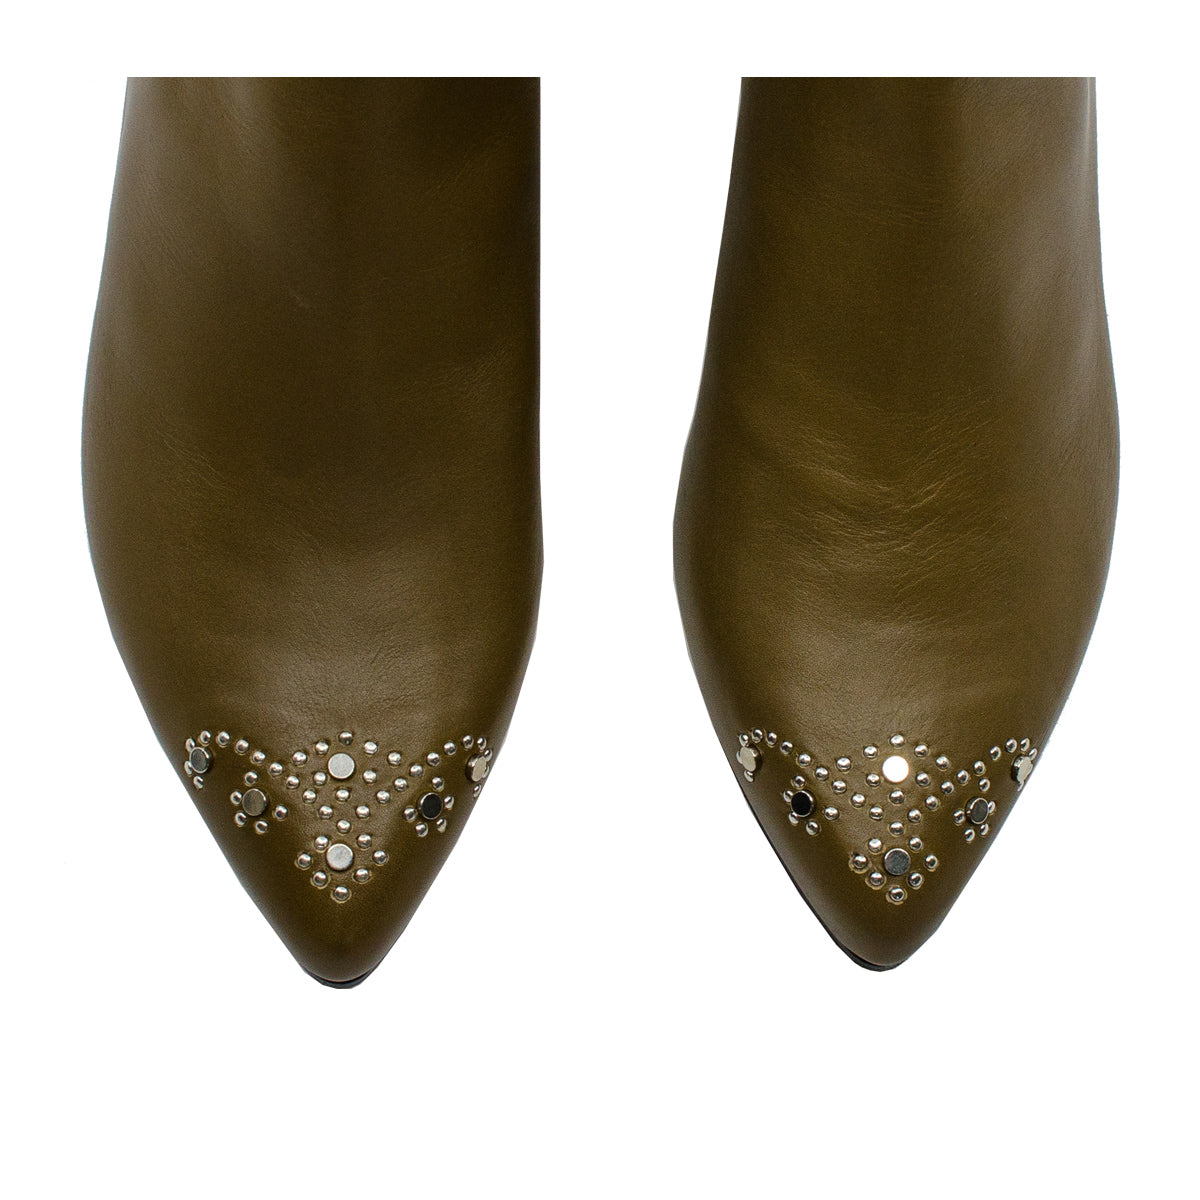 Alcazar studded leather boots